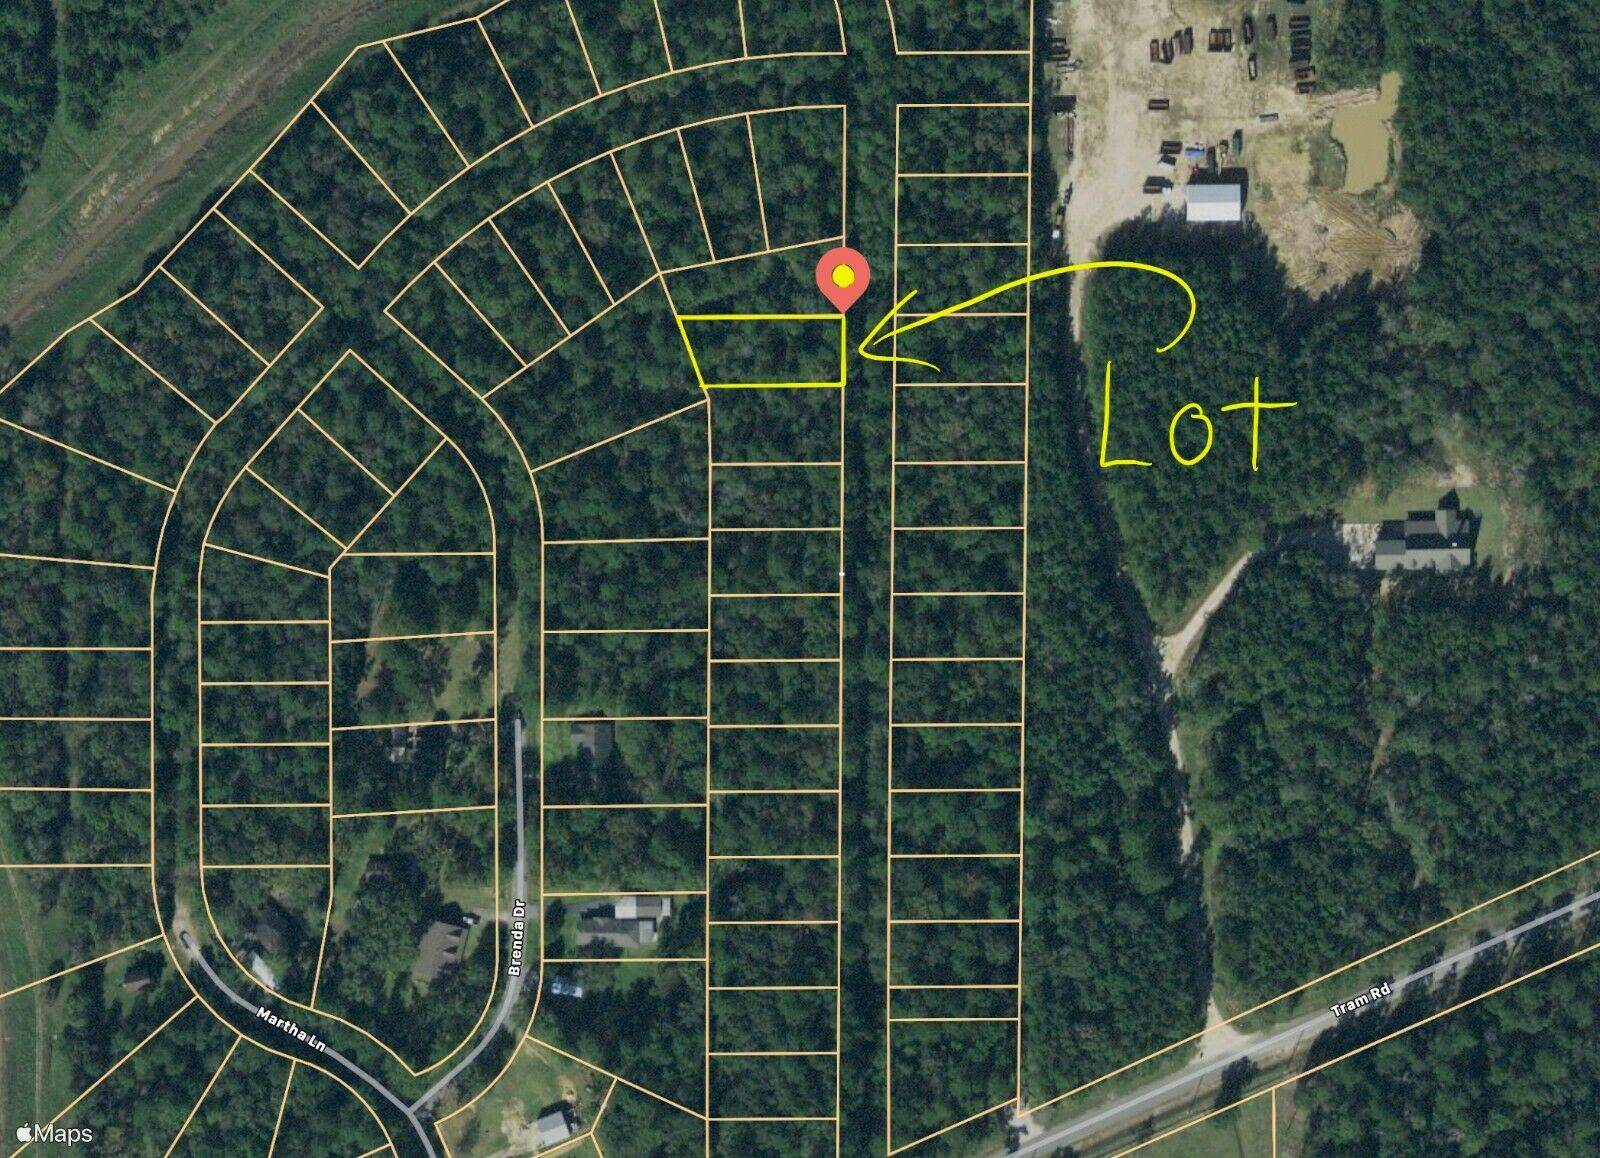 1/3 Acre Lot Beaumont TX -Bid On Full Price -NO RESERVE- HIGH BID OWNS IT - $1,075.00